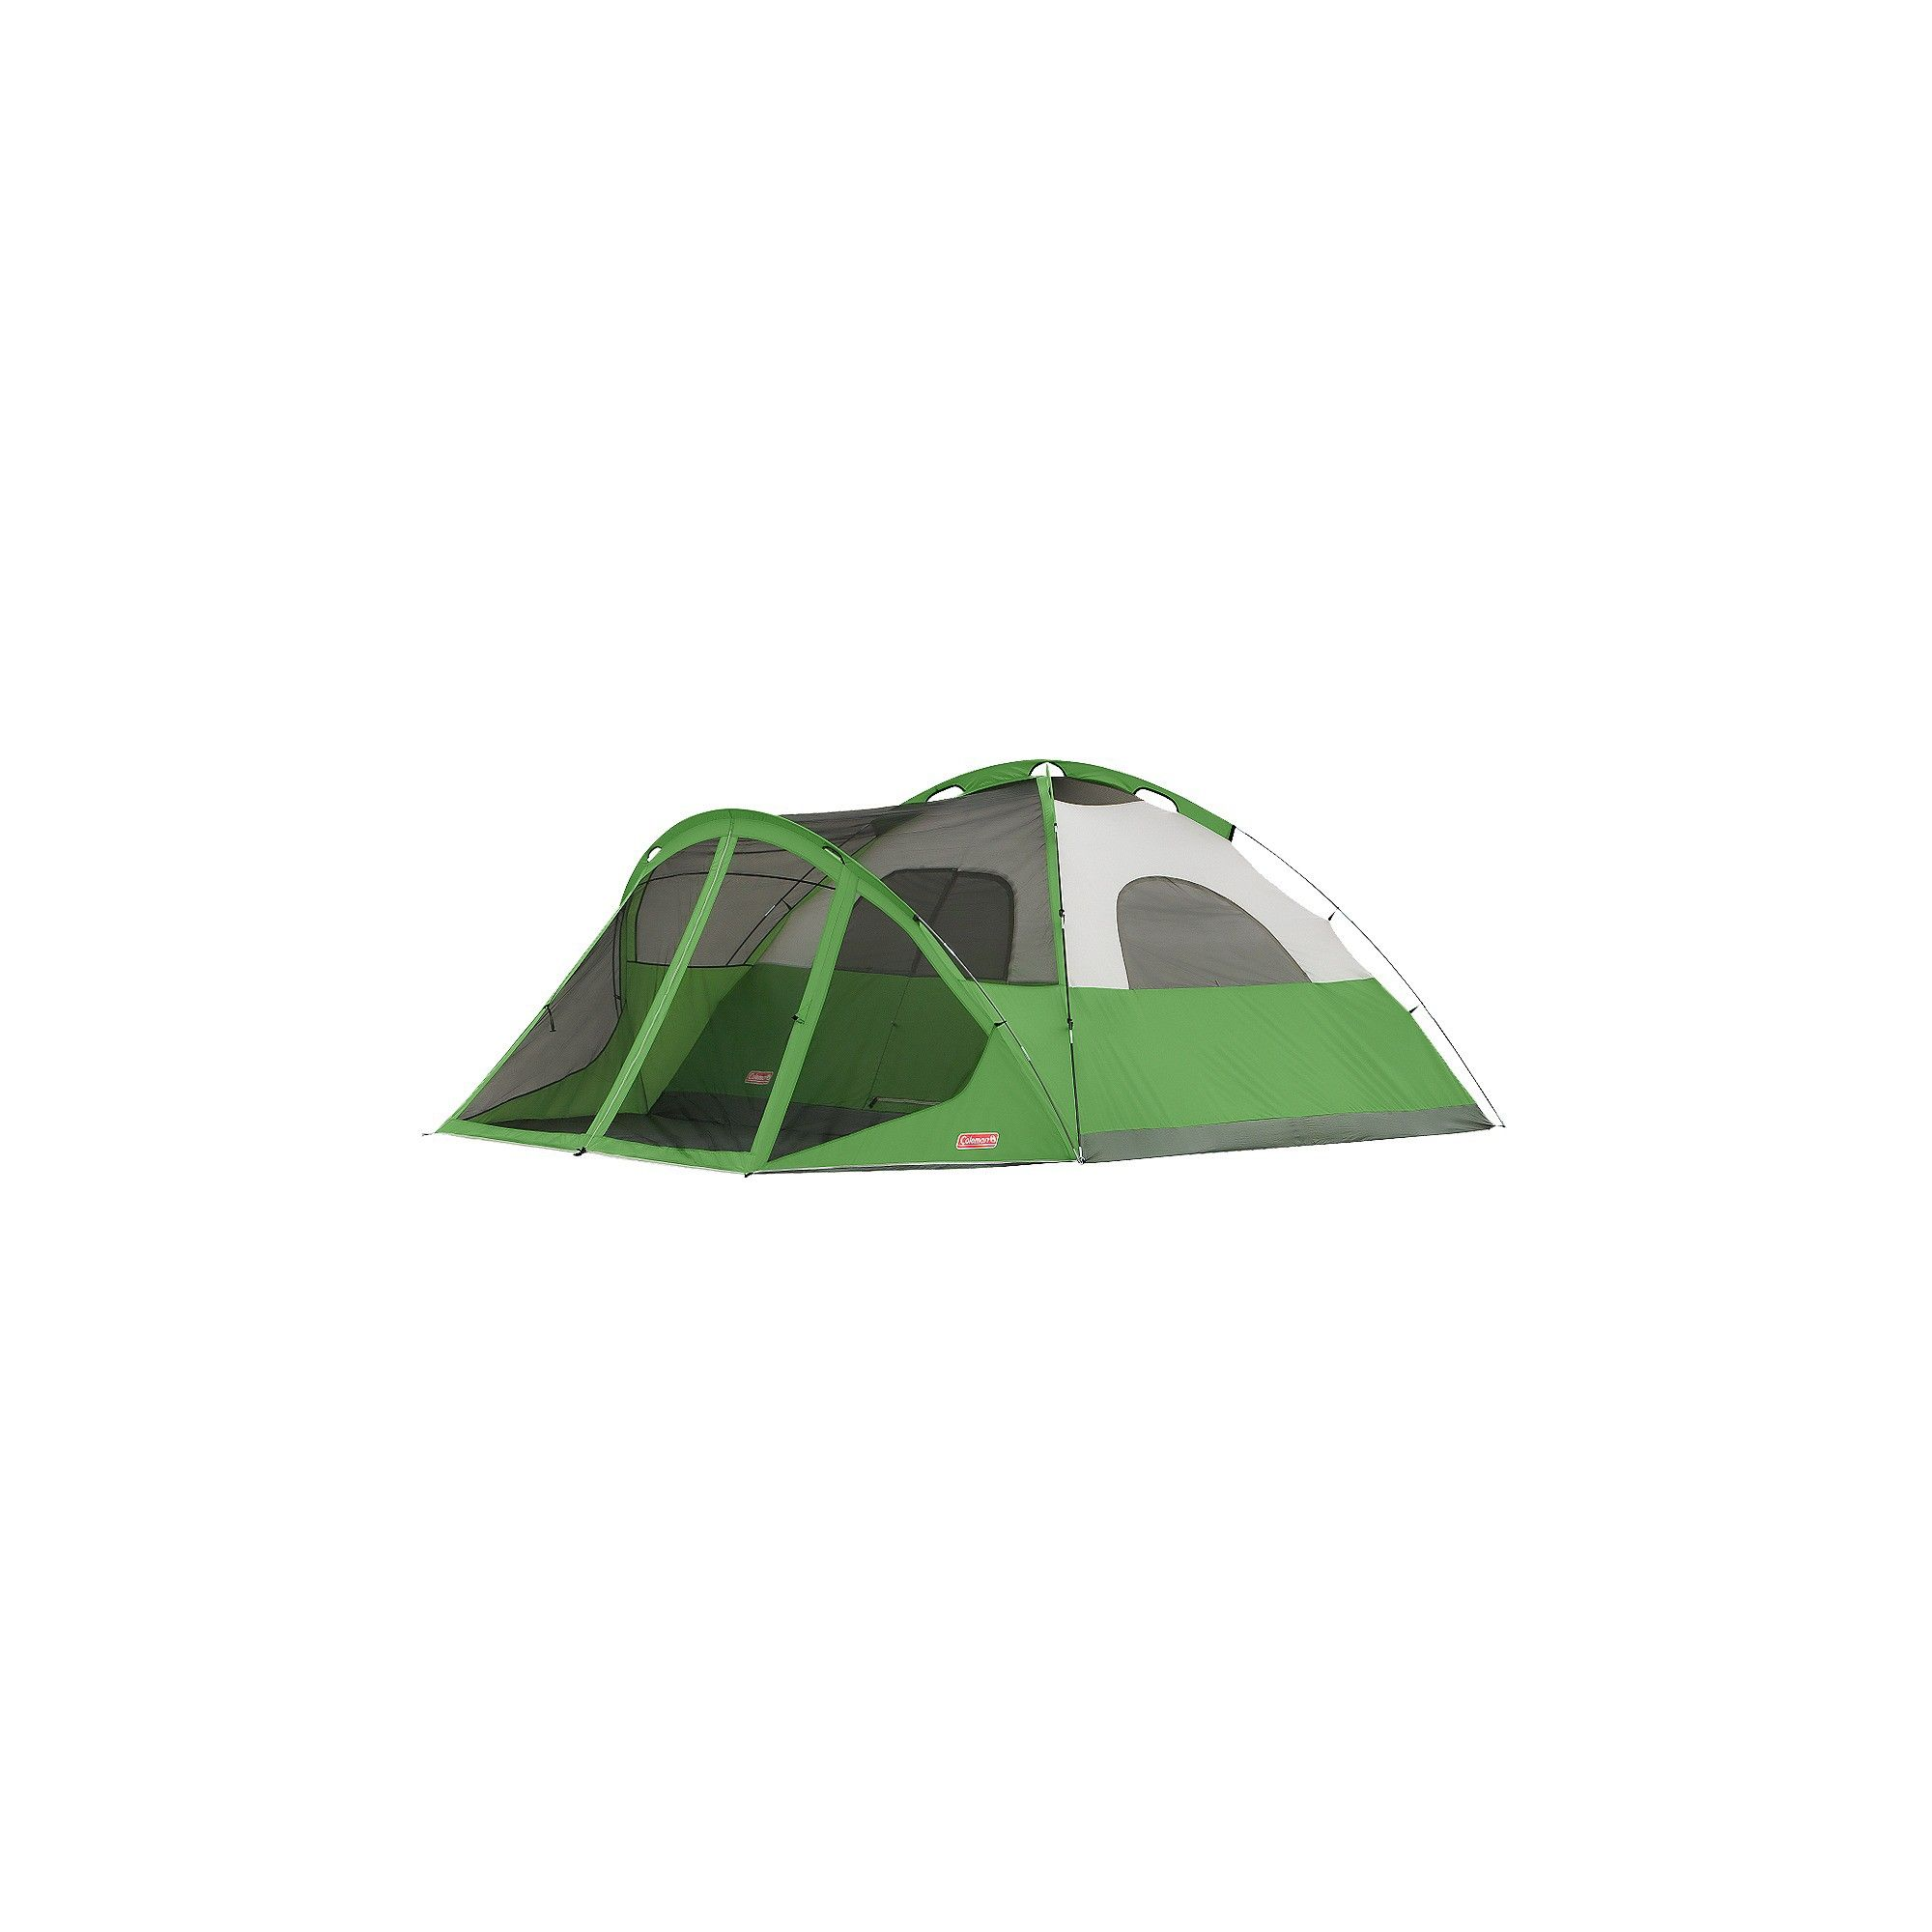 Coleman Evanston 8-Person Screened Tent - Green  sc 1 st  Pinterest & Coleman Evanston 8-Person Screened Tent - Green | Screen tent and ...